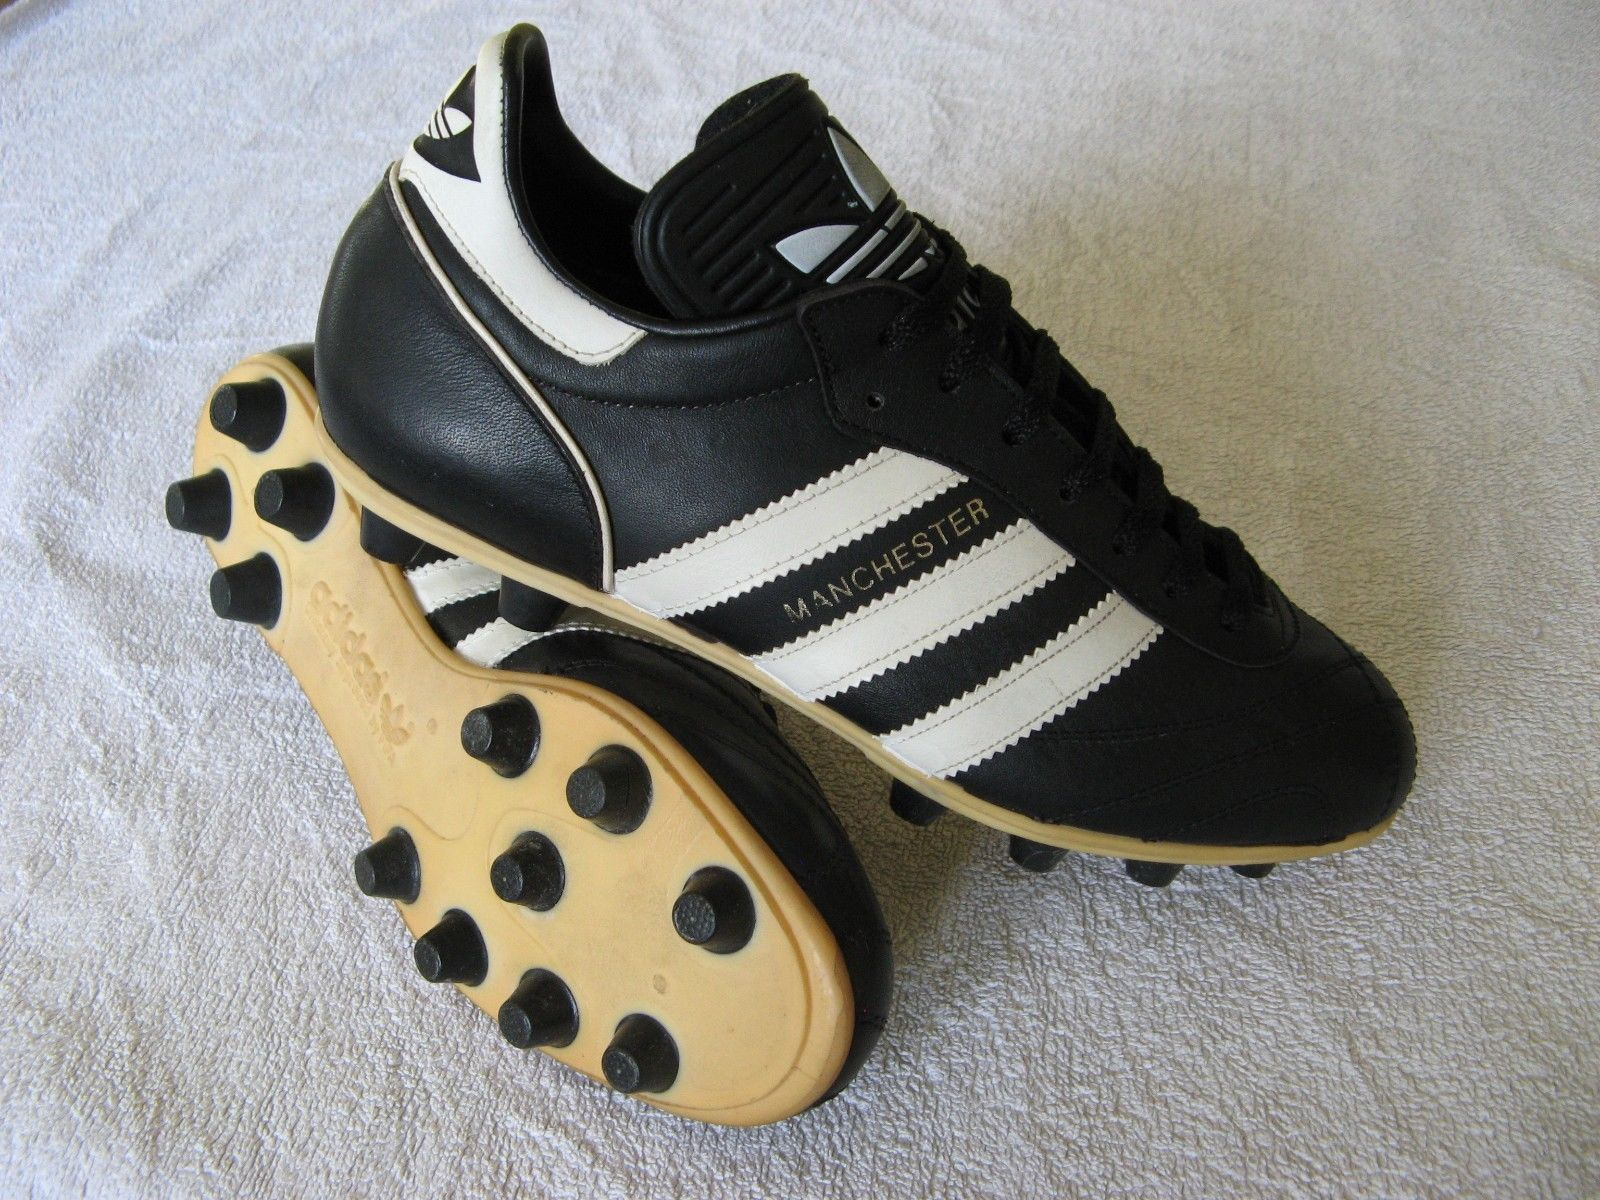 Vintage 1980's Adidas MANCHESTER Football Boots size 6 NOS